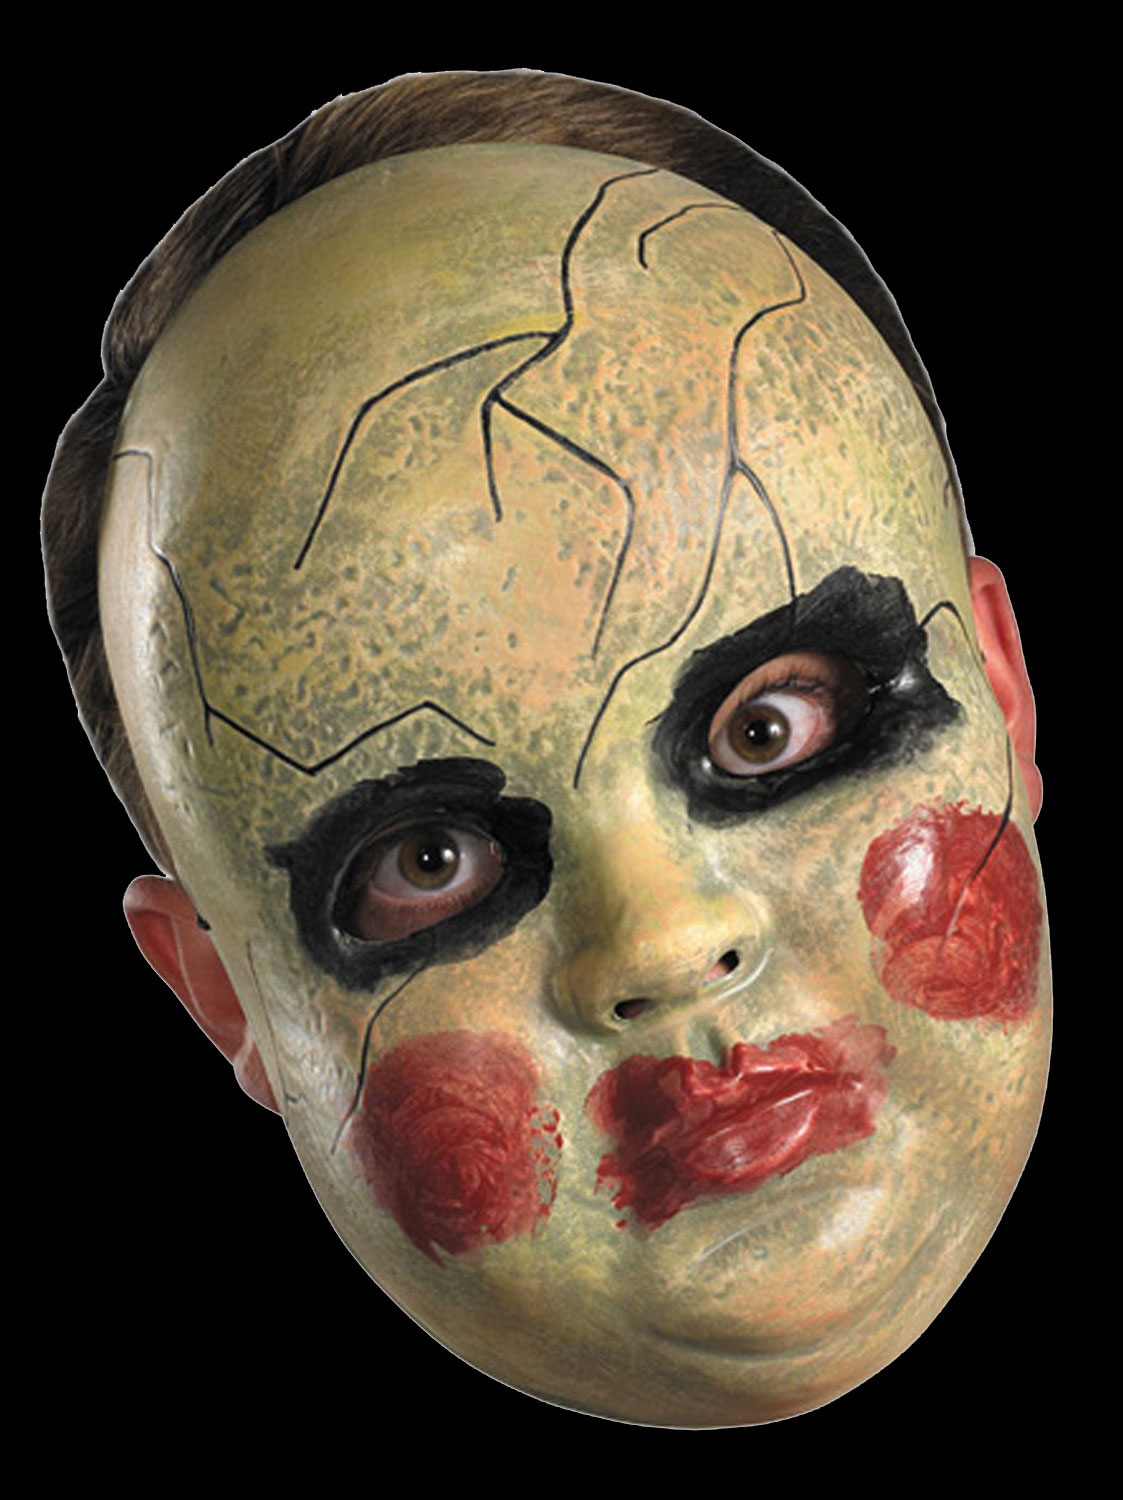 creepy-horror-baby-doll-face-mask-halloween-costume-accessory ...